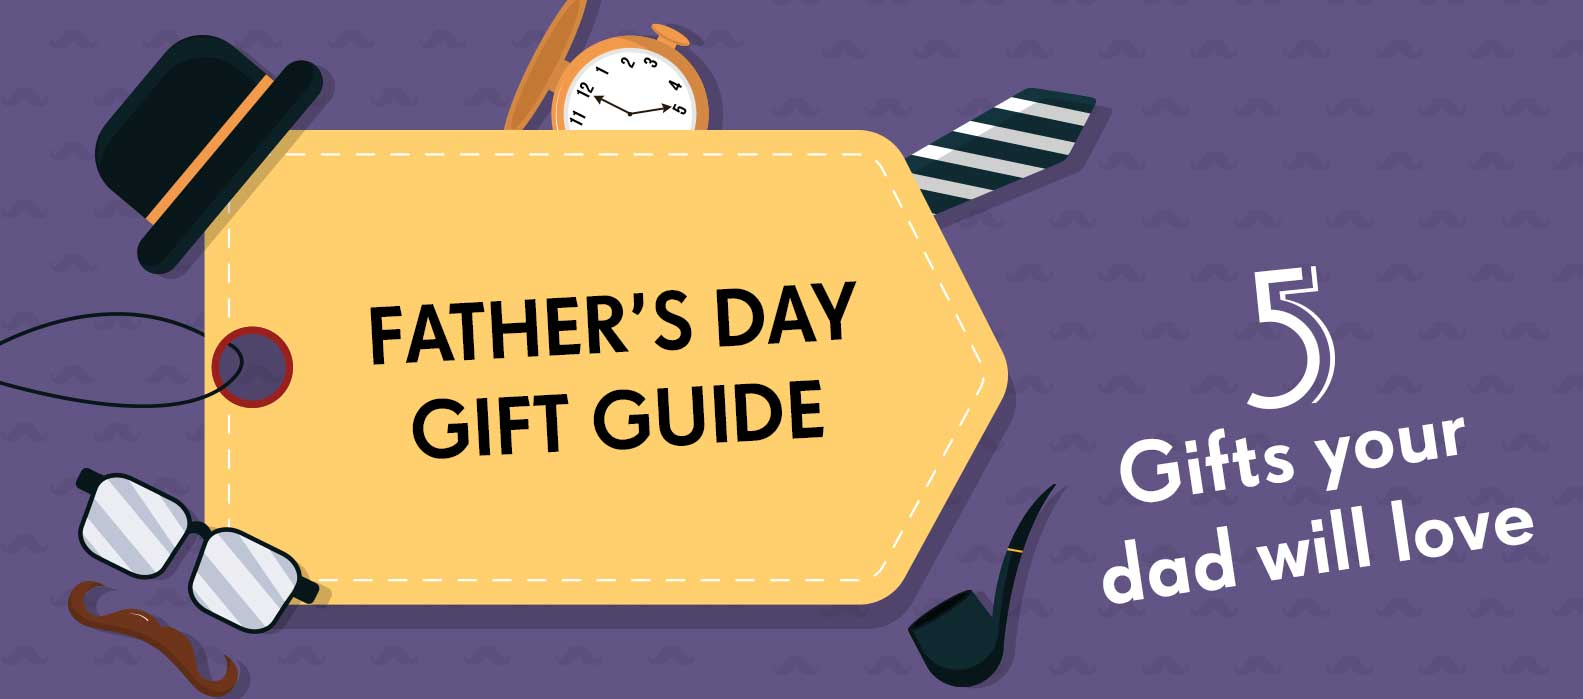 Father's day gift guide: Top 5 gifts your dad will love